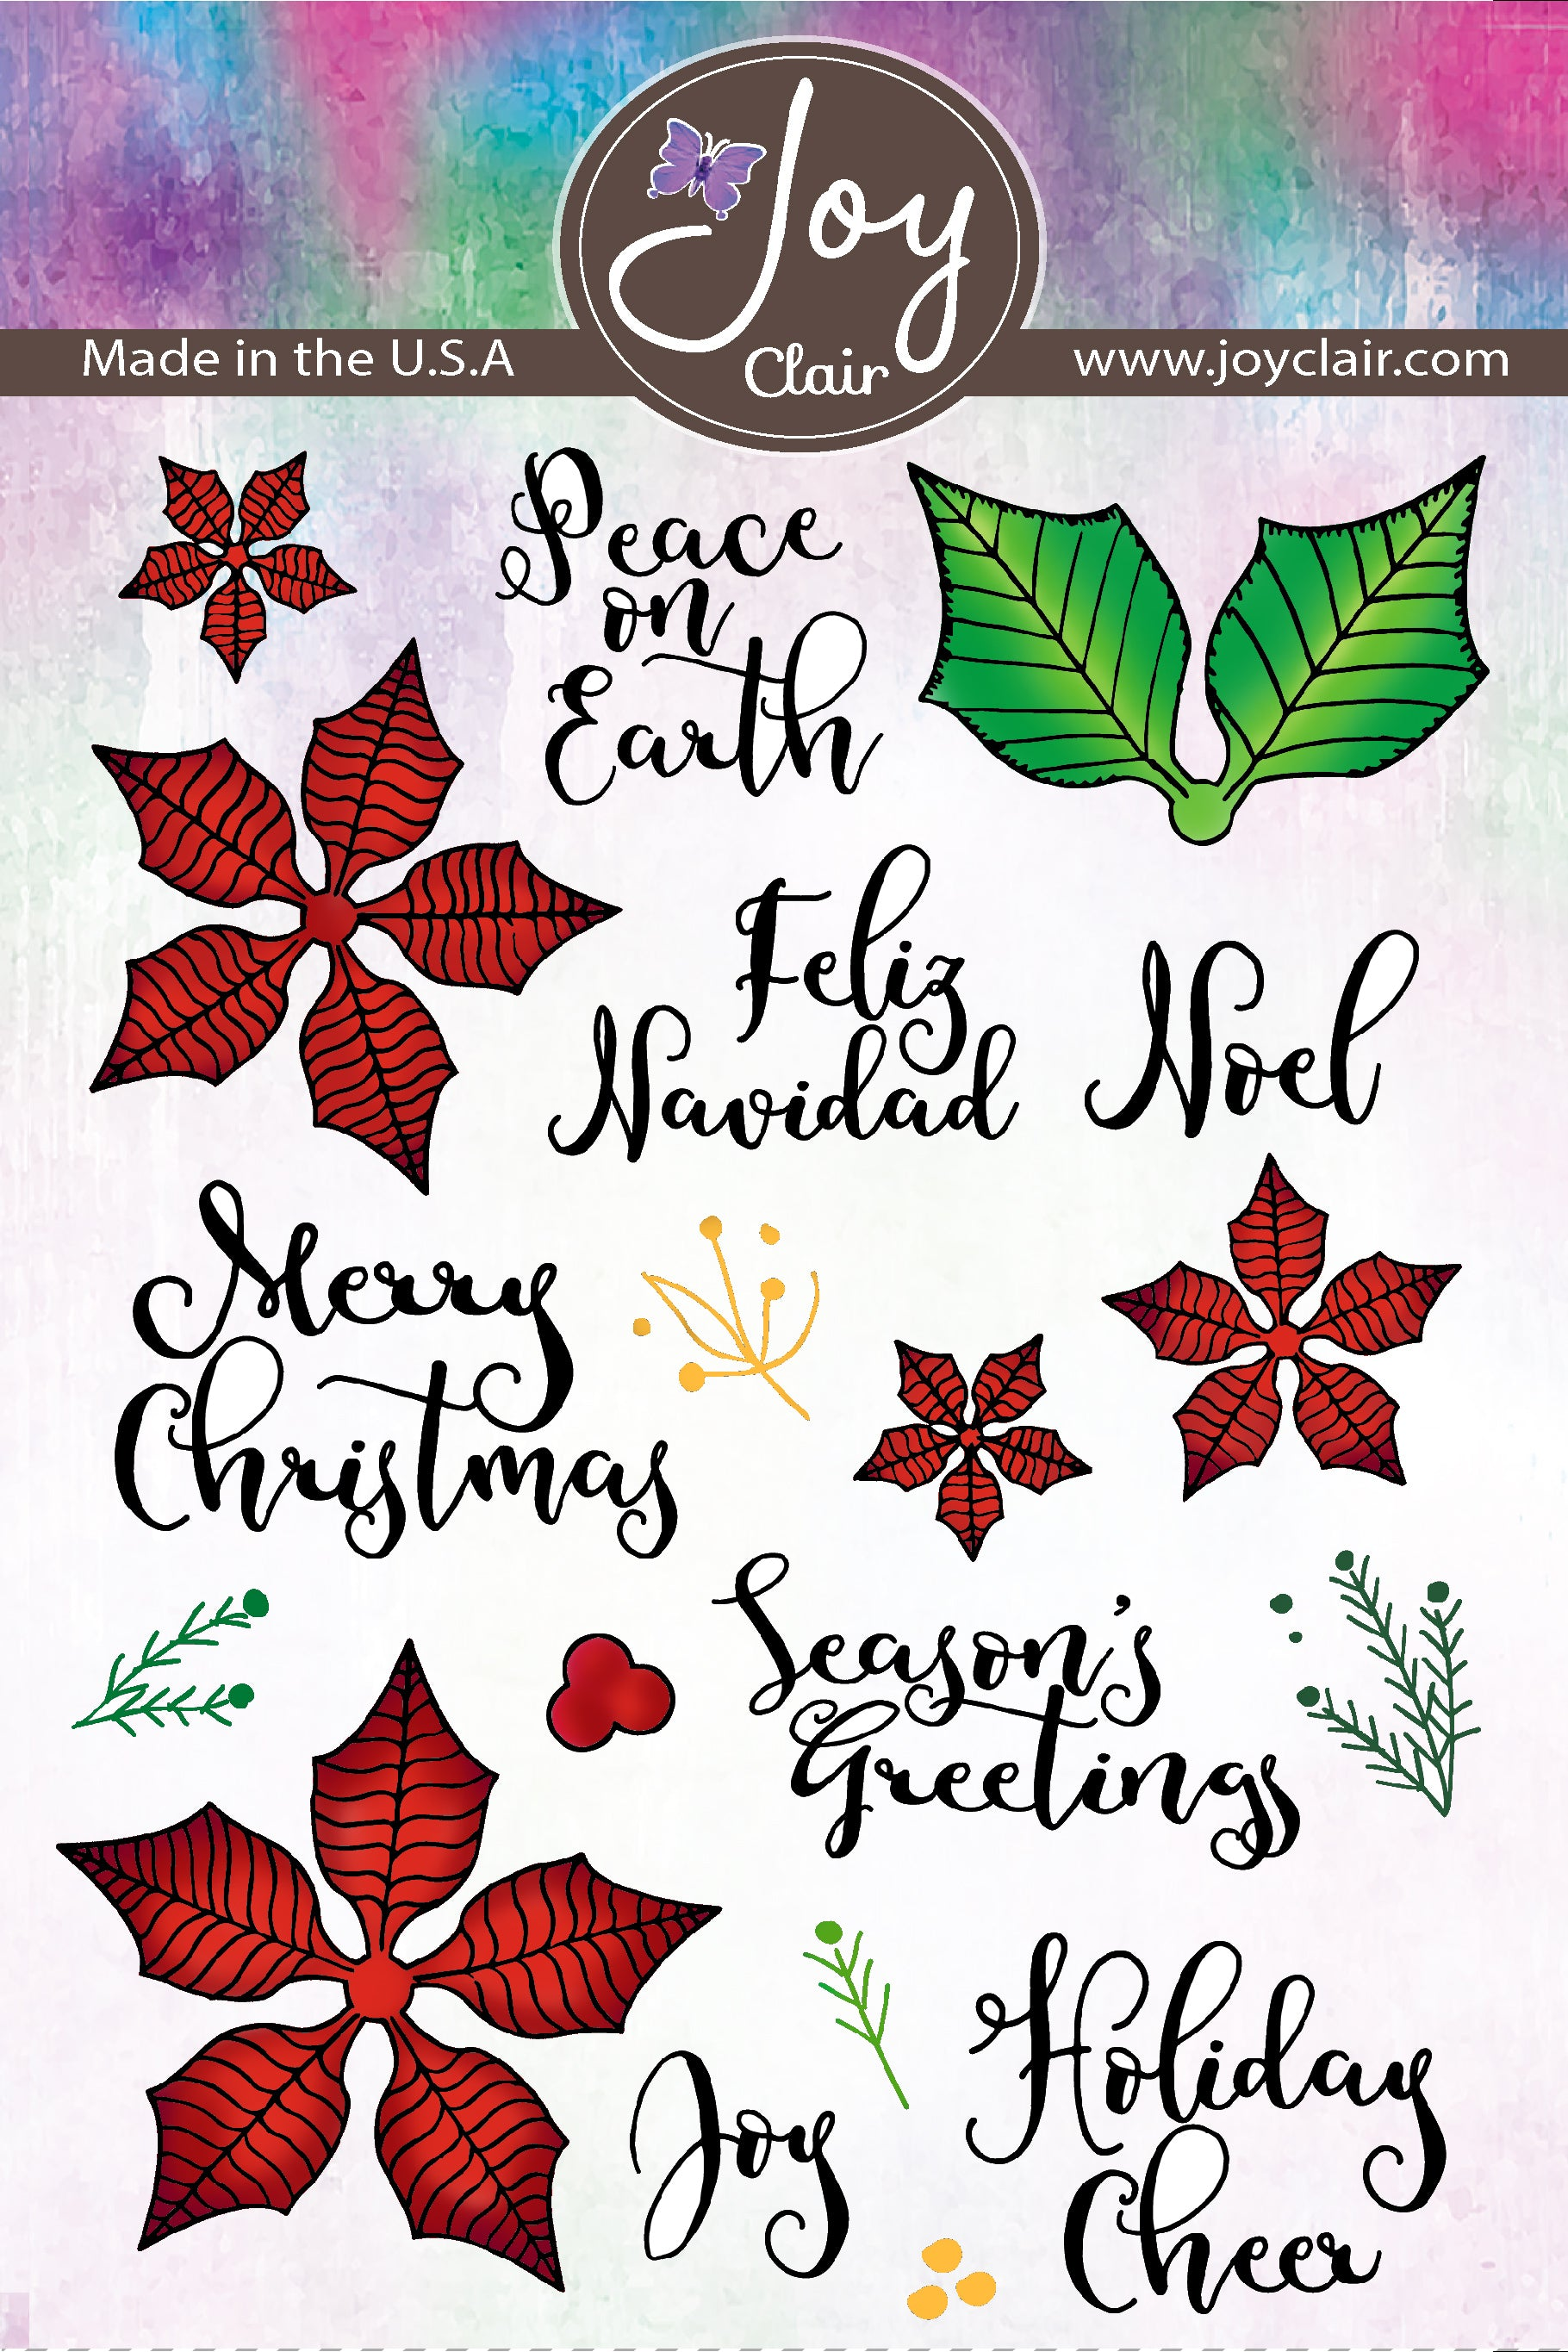 Traditional poinsettia flowers and Christmas sentiments